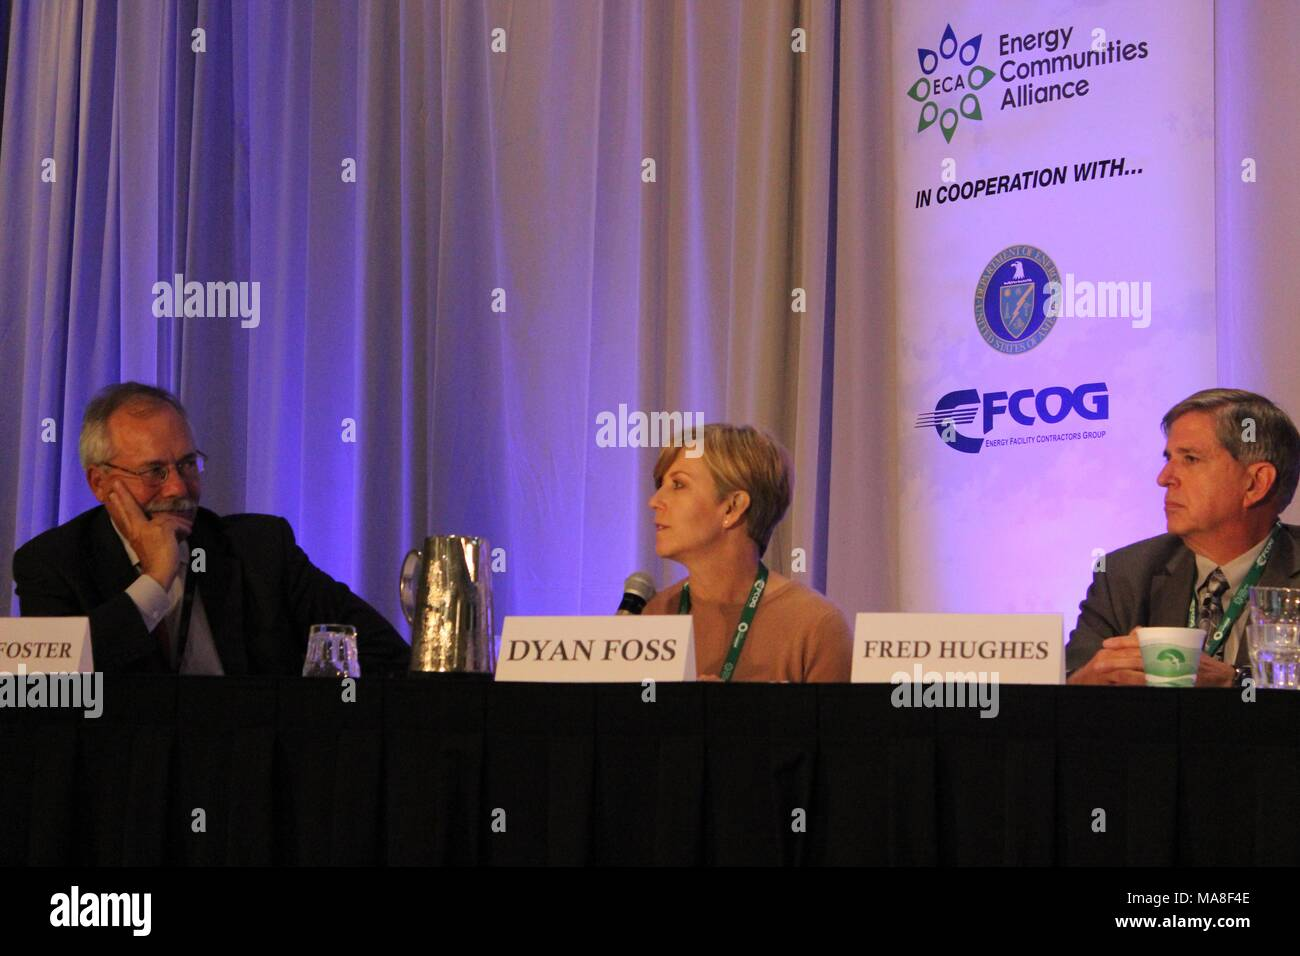 Three panel members, including Dyan Foss and Fred Hughes, seated behind a table at the United States Department of Energy (DOE) 2016 National Cleanup Workshop, held in cooperation with the Energy Communities Alliance (ECA) and FCOG, September 14-15, at the Hilton Alexandria Mark Center in Alexandria, Virginia, Image courtesy US Department of Energy, September, 2016. () - Stock Image